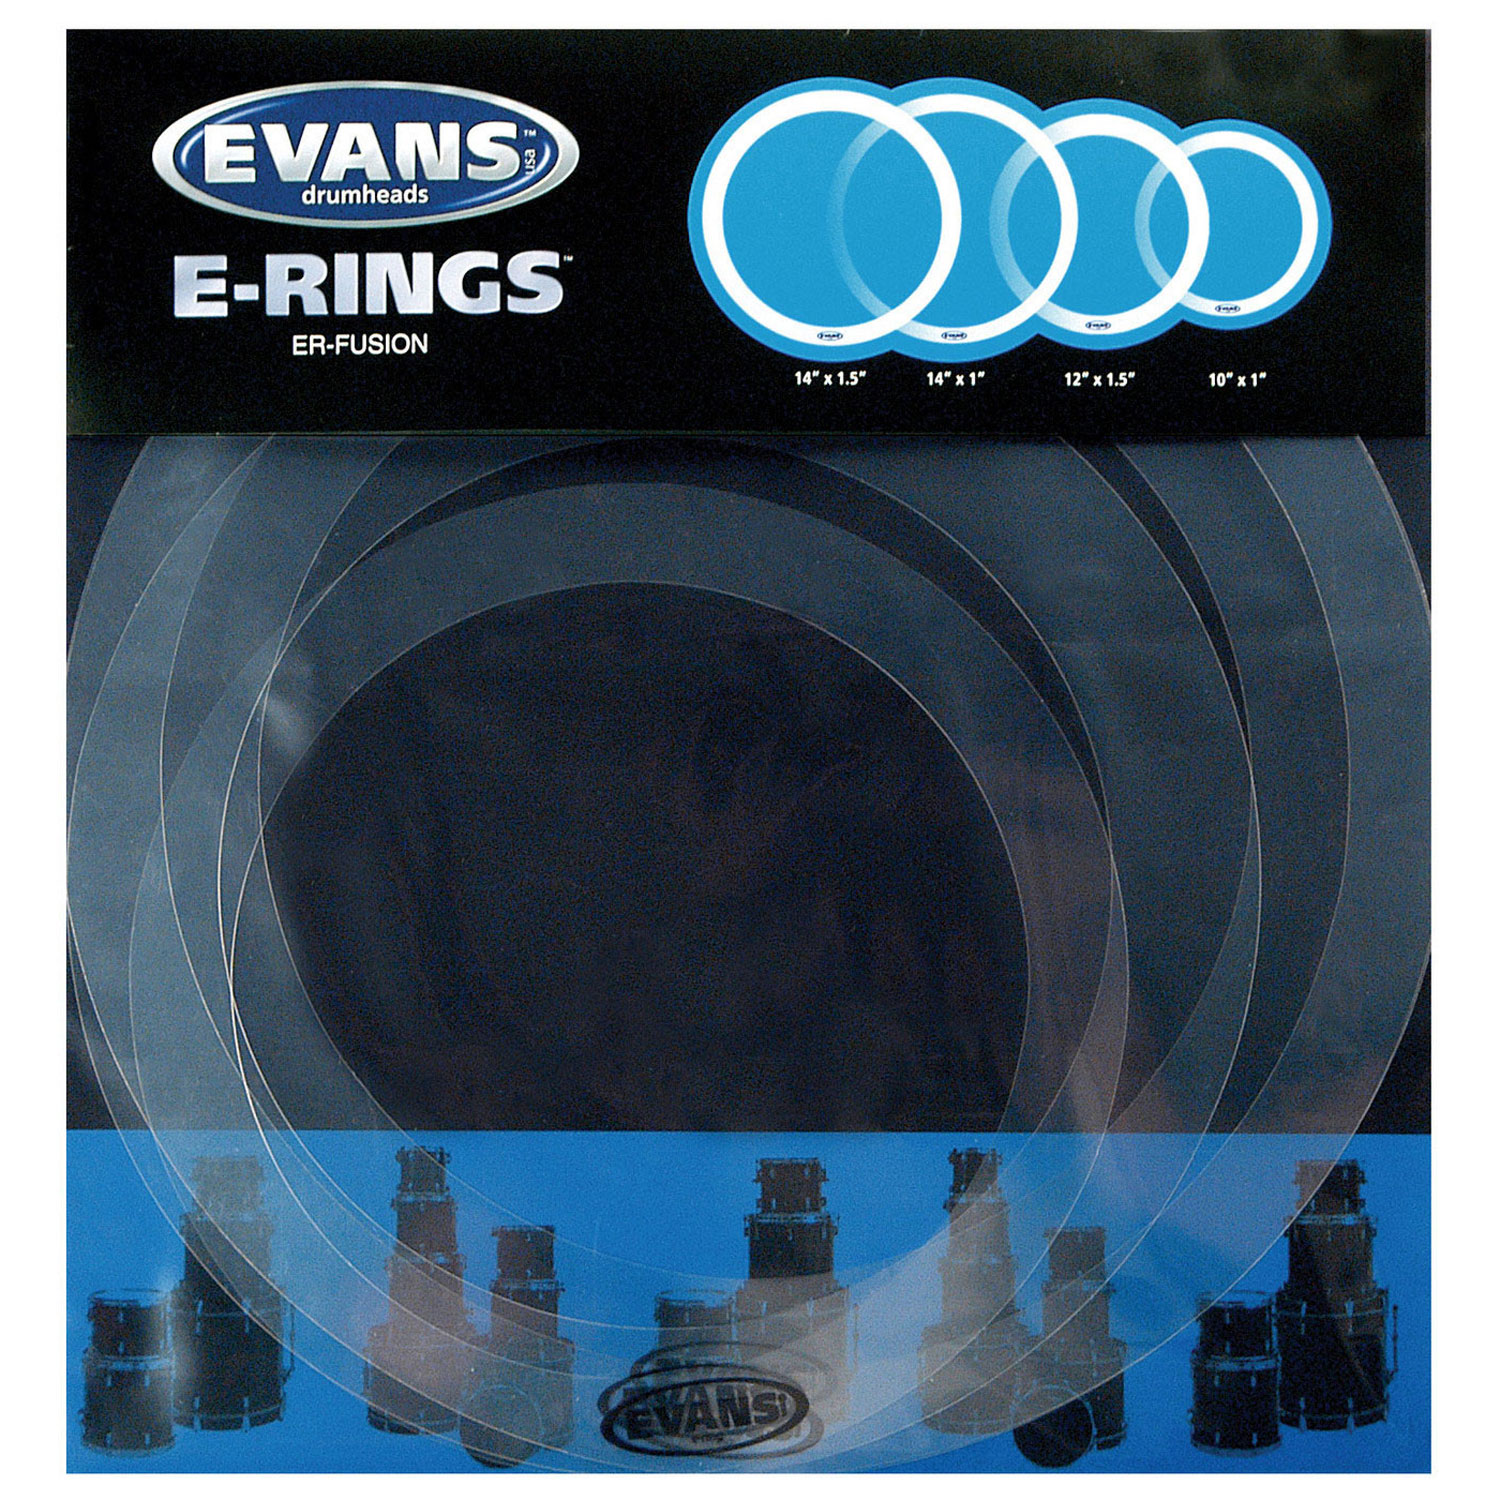 "Evans E-Ring 10-12-14 14"" Fusion Pack"